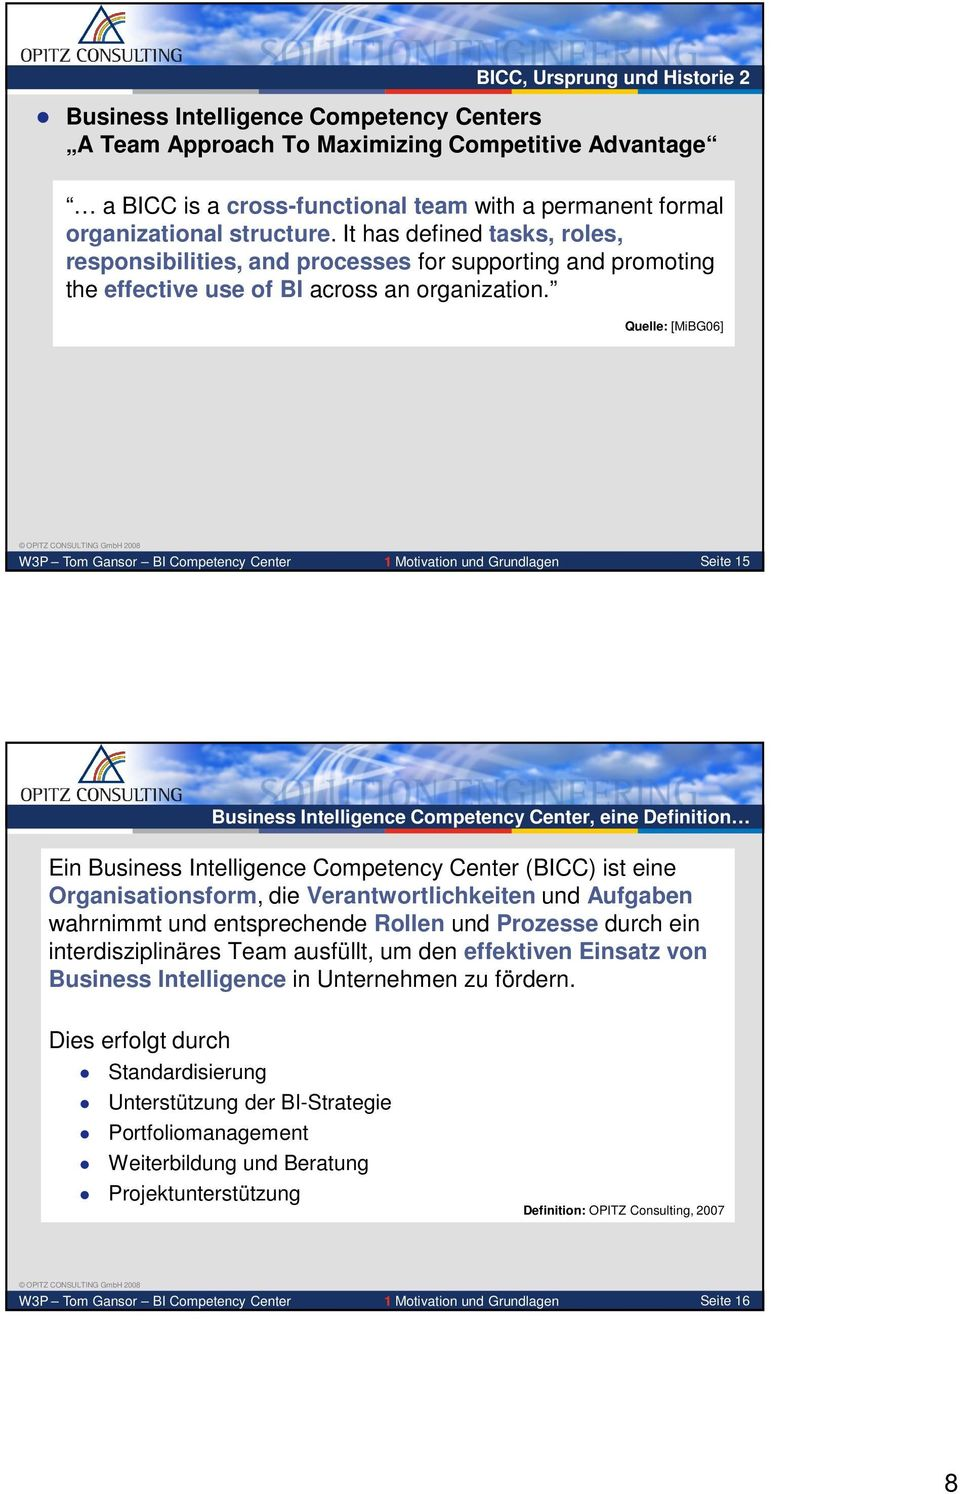 Quelle: [MiBG06] 1 Motivation und Grundlagen Seite 15 Business Intelligence Competency Center, eine Definition Ein Business Intelligence Competency Center (BICC) ist eine Organisationsform, die